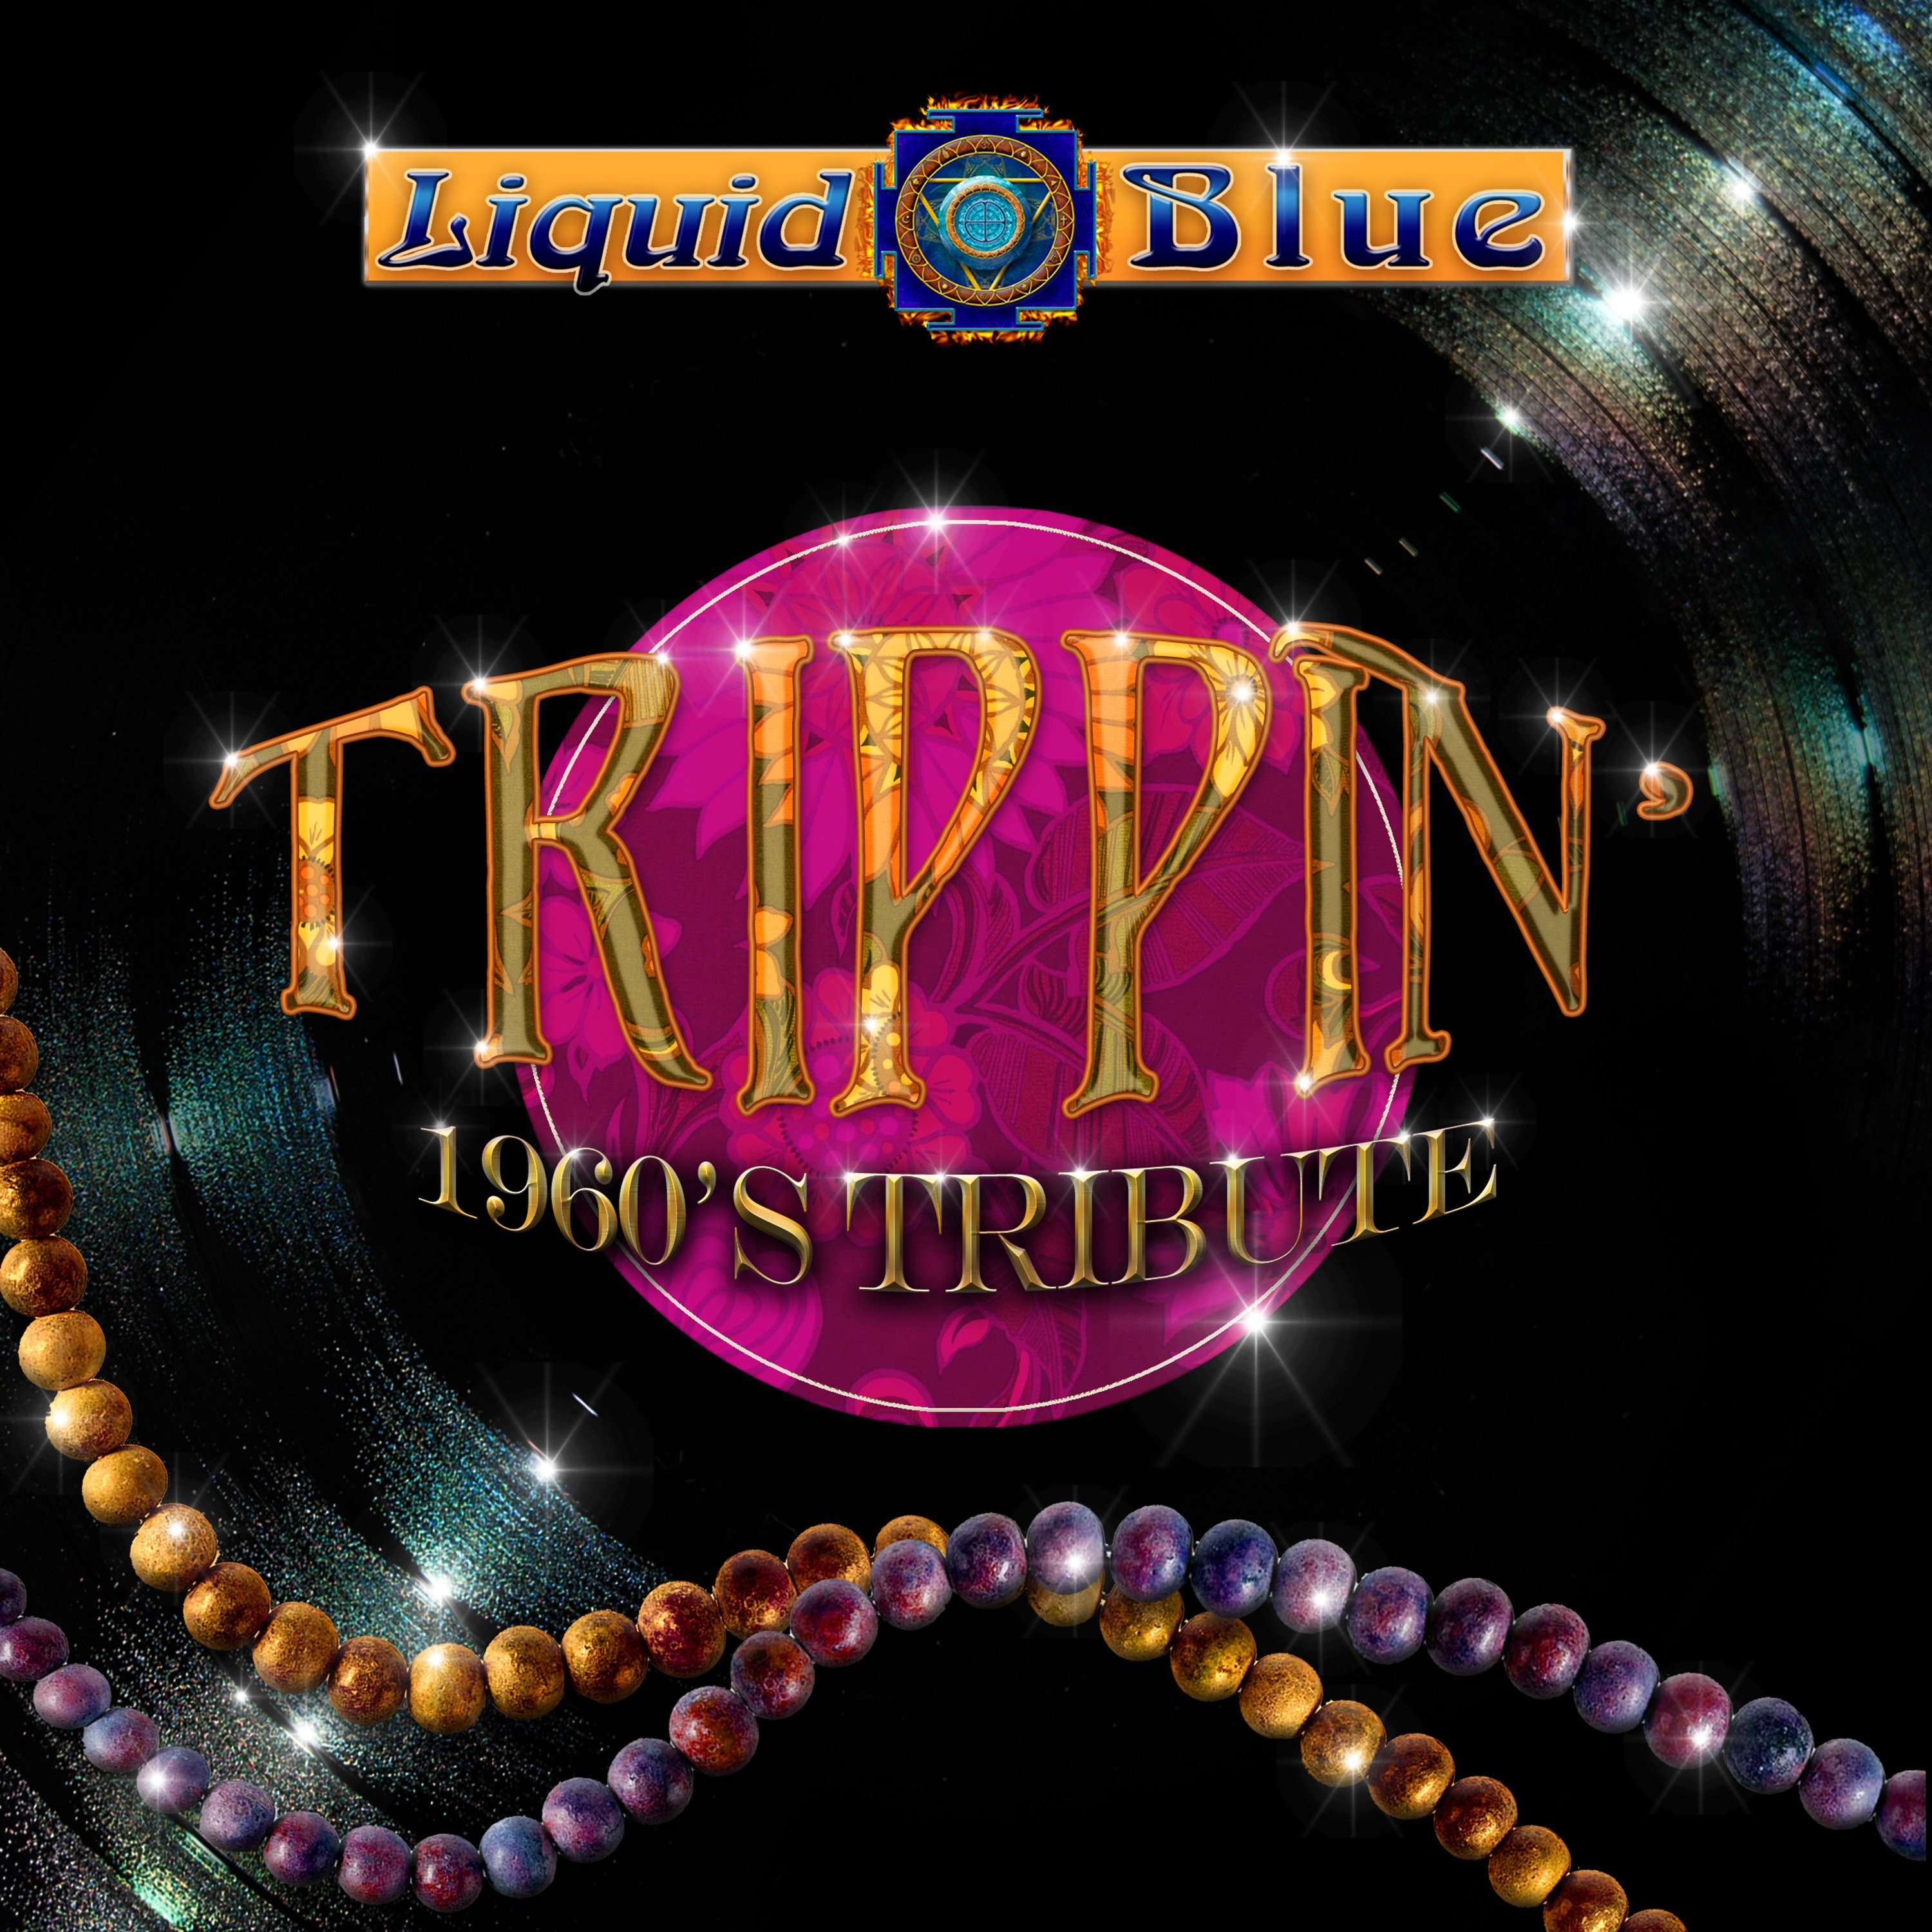 Trippin' 1960's Tribute - Liquid Blue